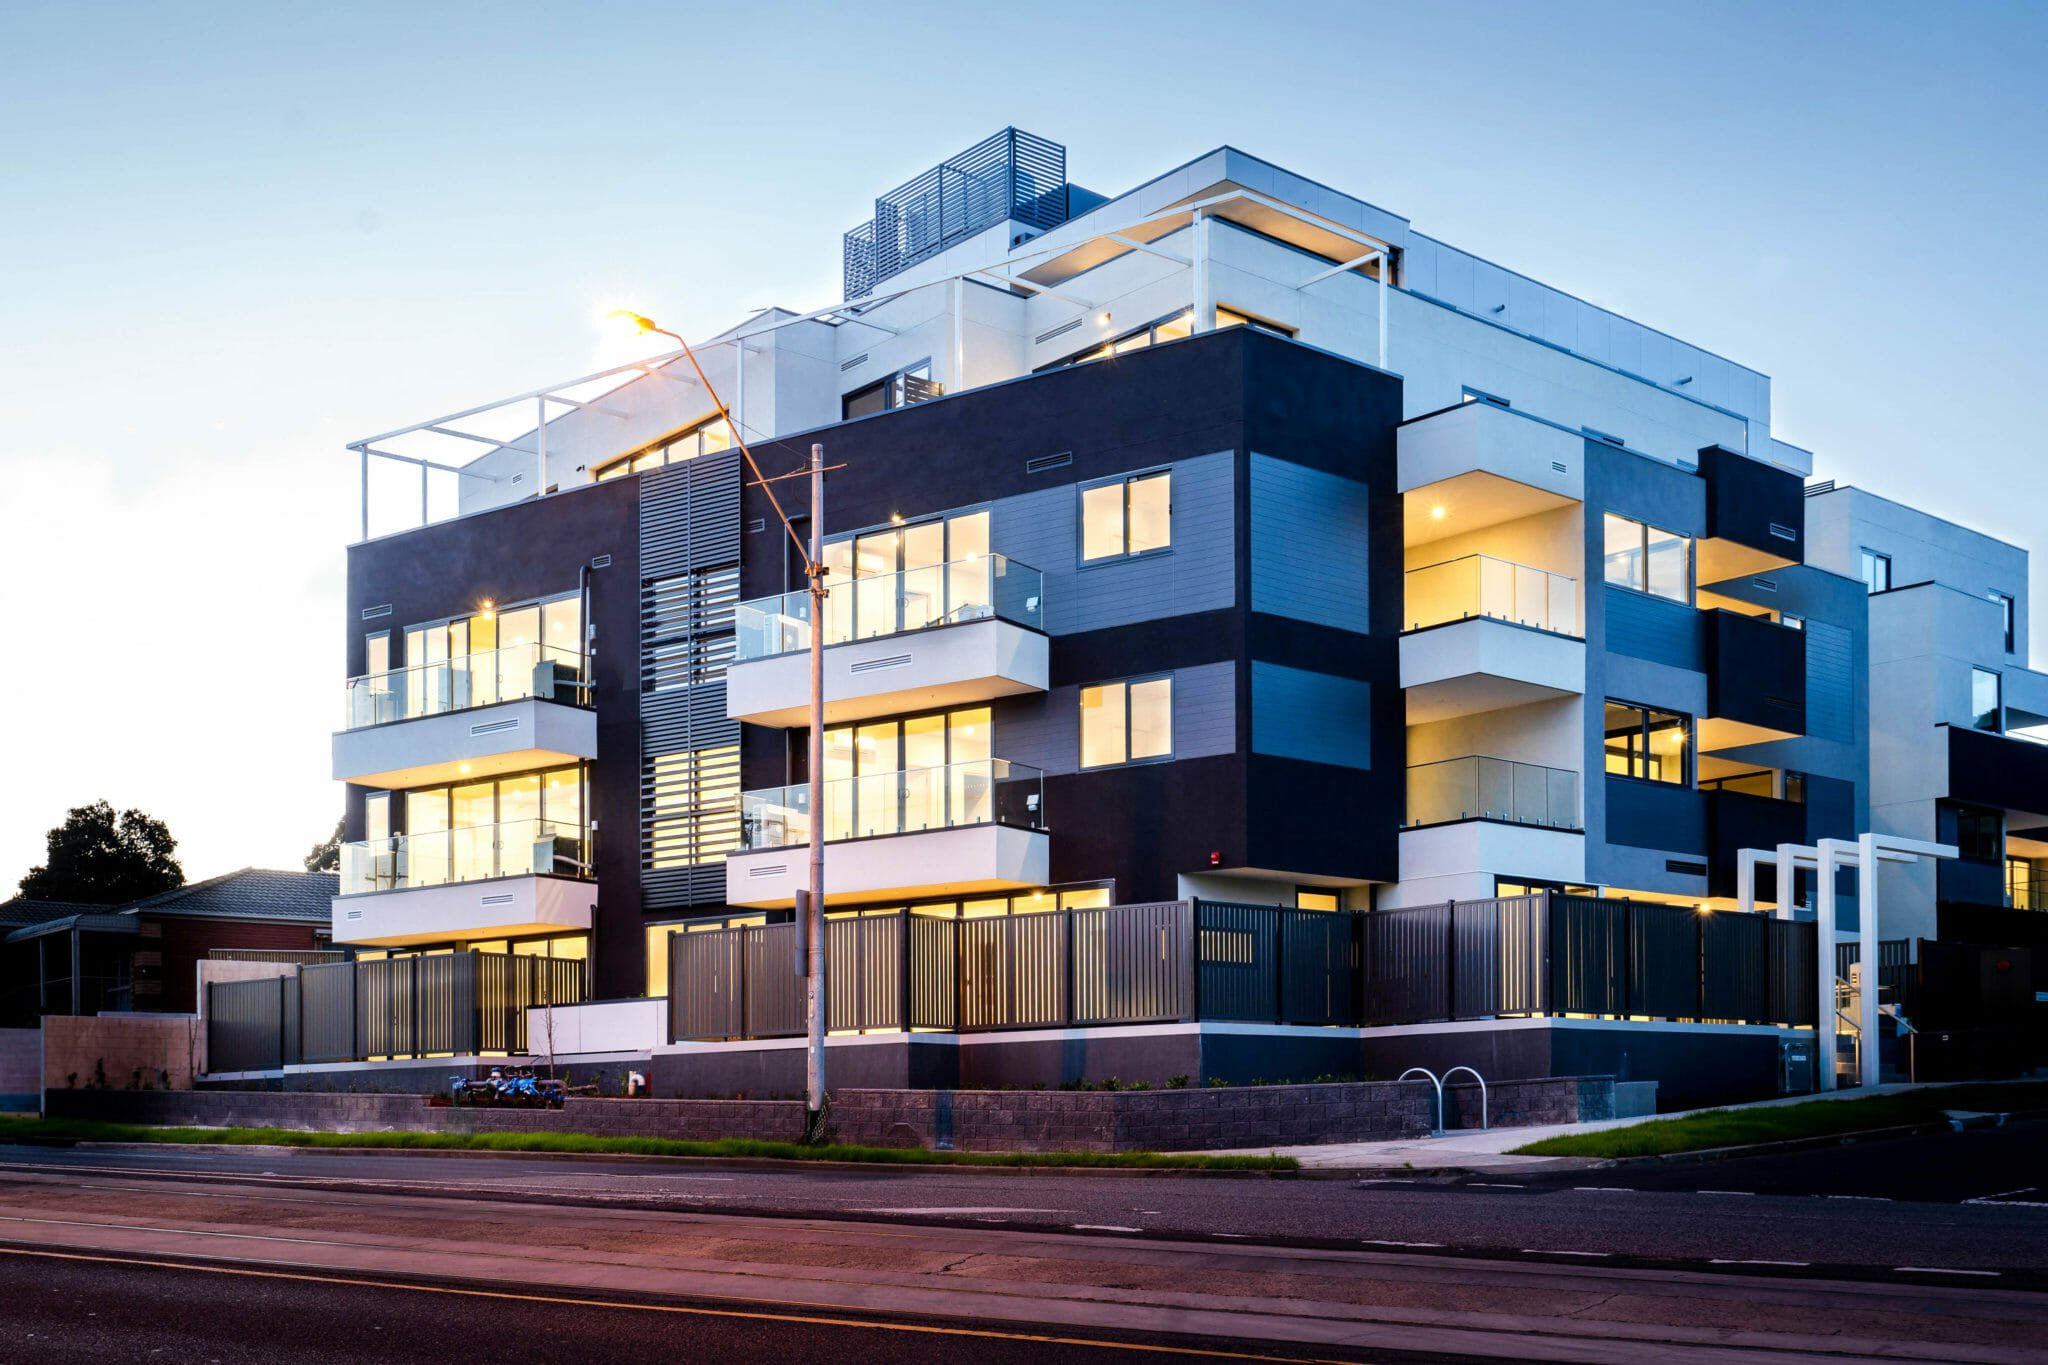 burwood-completed-apartments-centrally-located-spacious-design